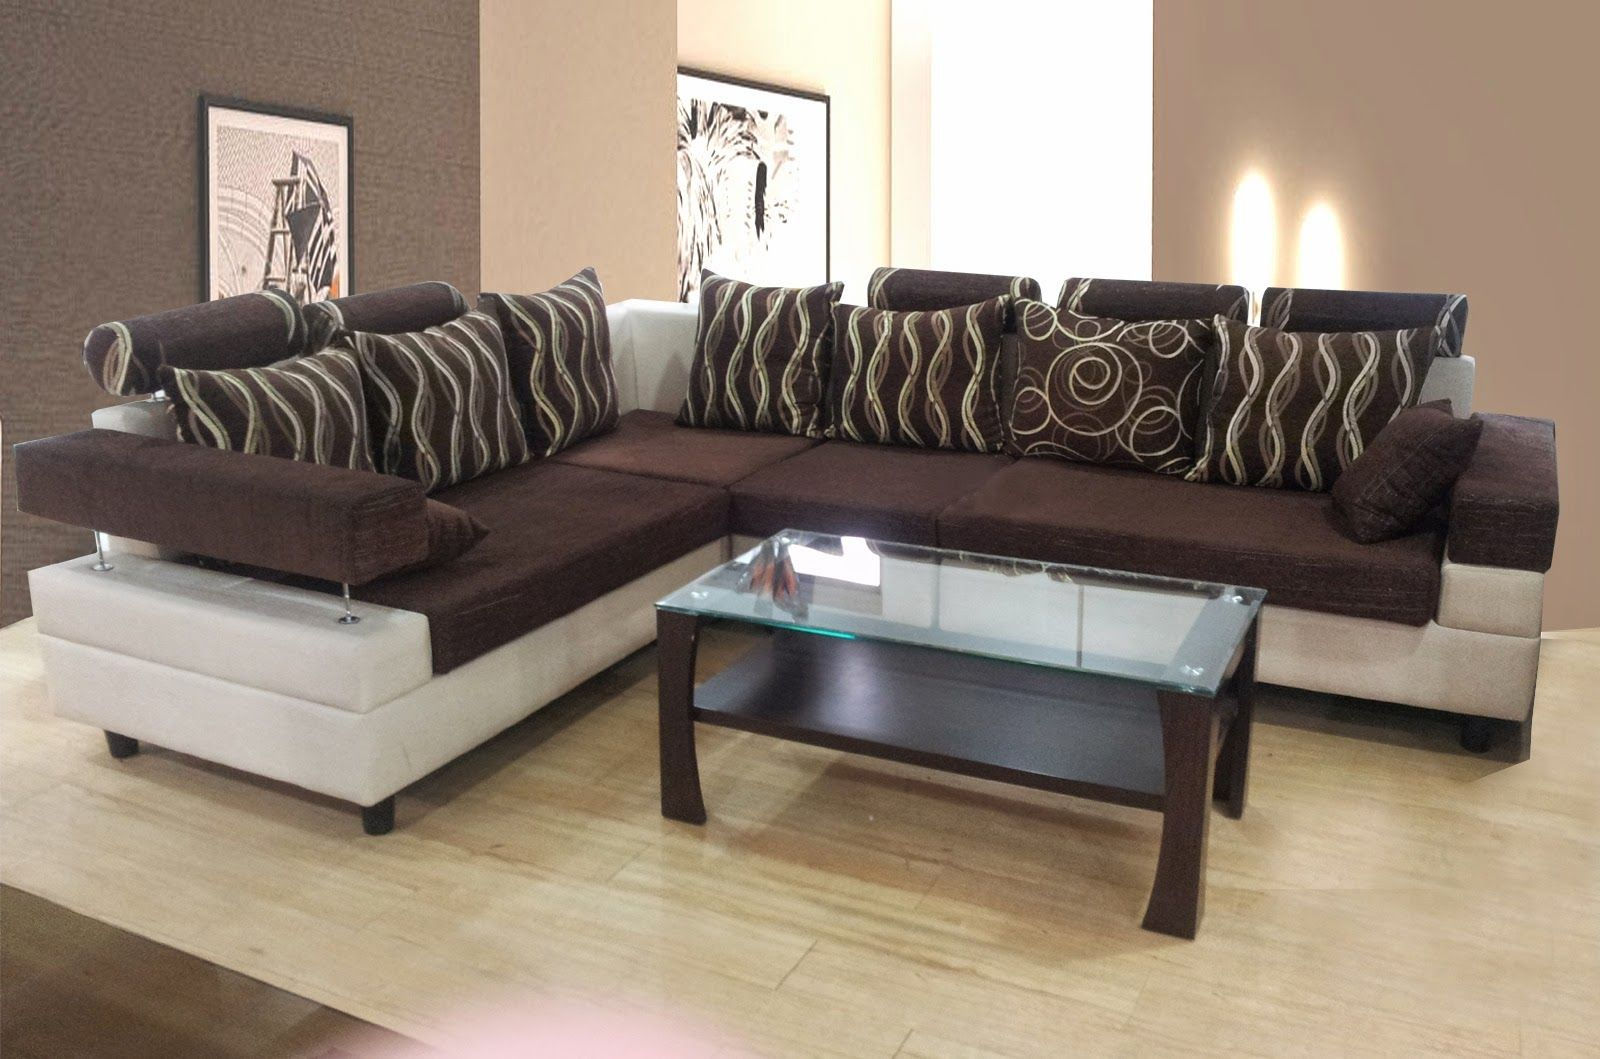 Nairobi luxe sofa sets welcome to nairobi luxe furniture for Living room ideas kenya